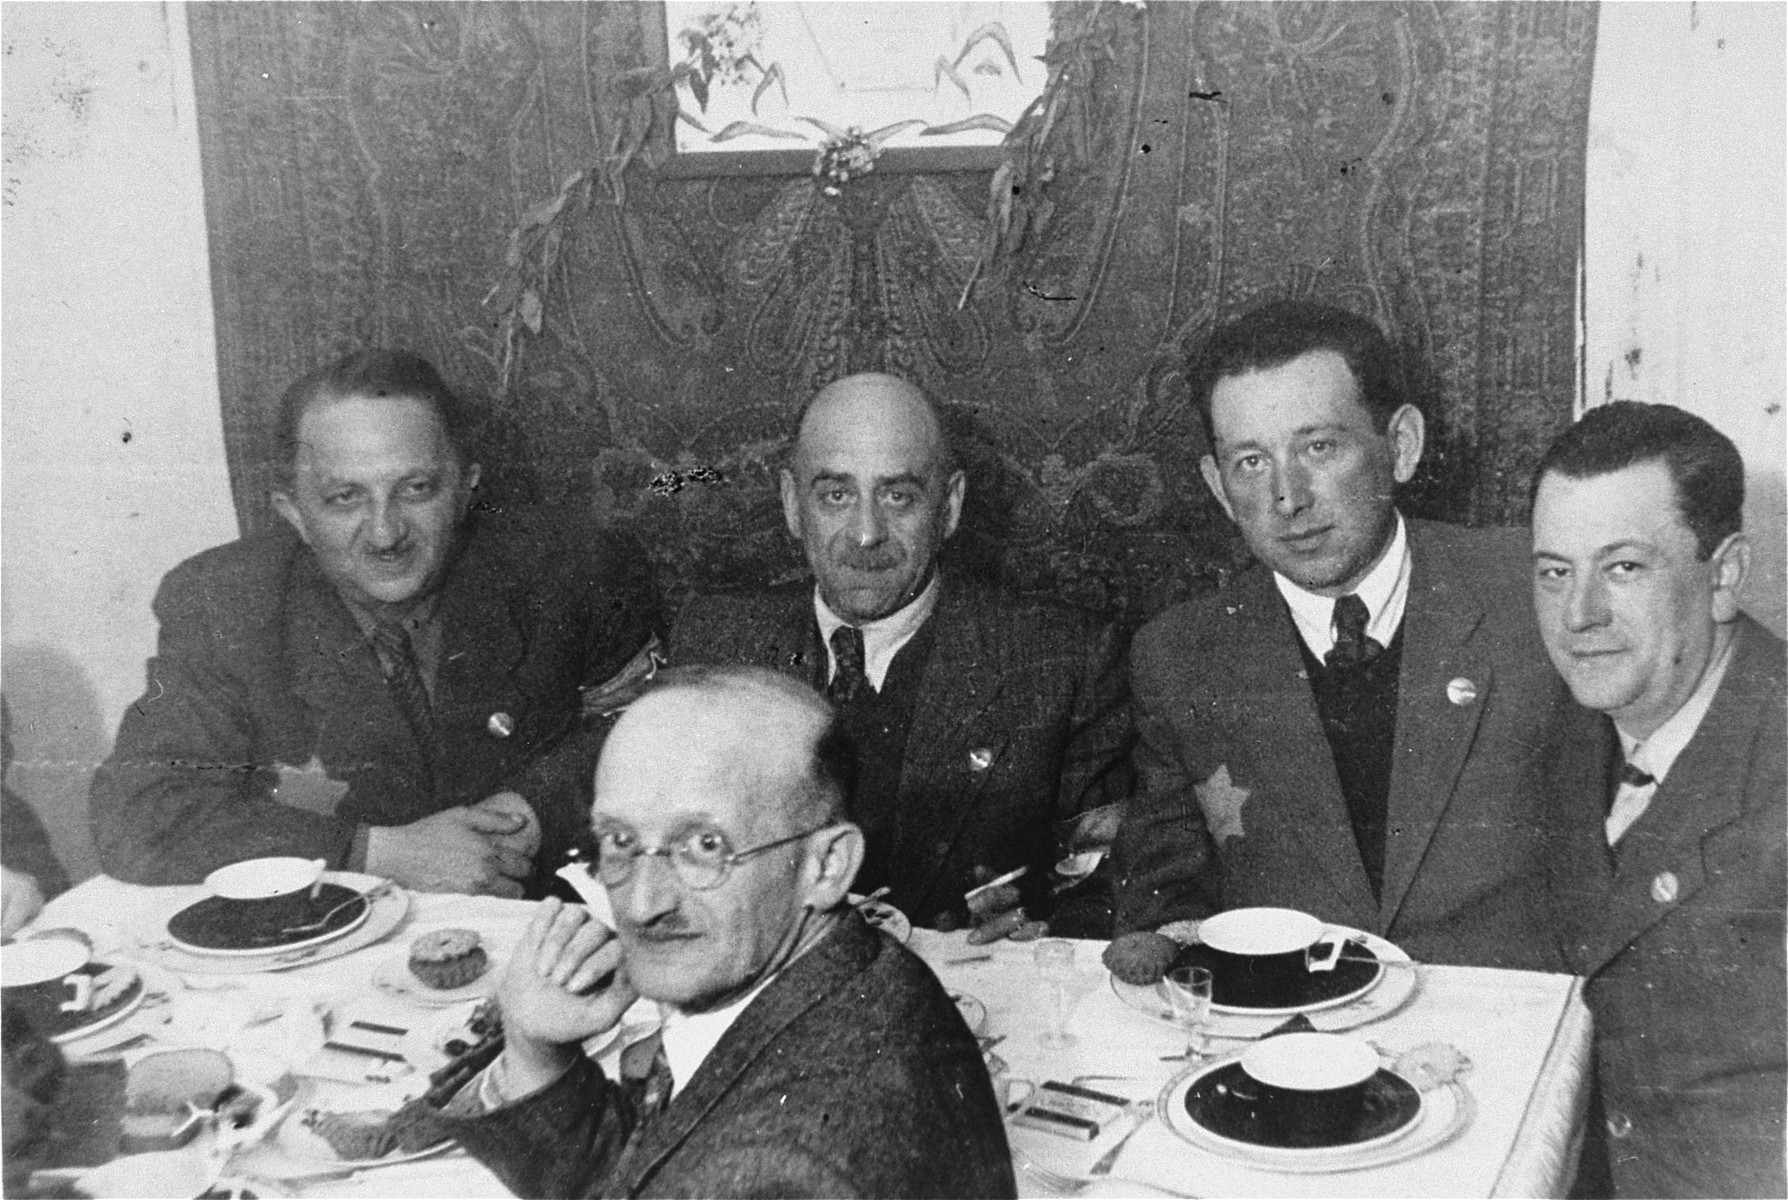 Members of the Lodz ghetto administration are gathered around a table.  Seated on the far side of the table are: Leon Rozenblat, chief of the ghetto police (third from the right), Zygmunt Reingold, head of food supply (second from the right), Jozef Chimowicz, head of the metal workshop and youth employment (far right) and Julek Grosbart (first row) .